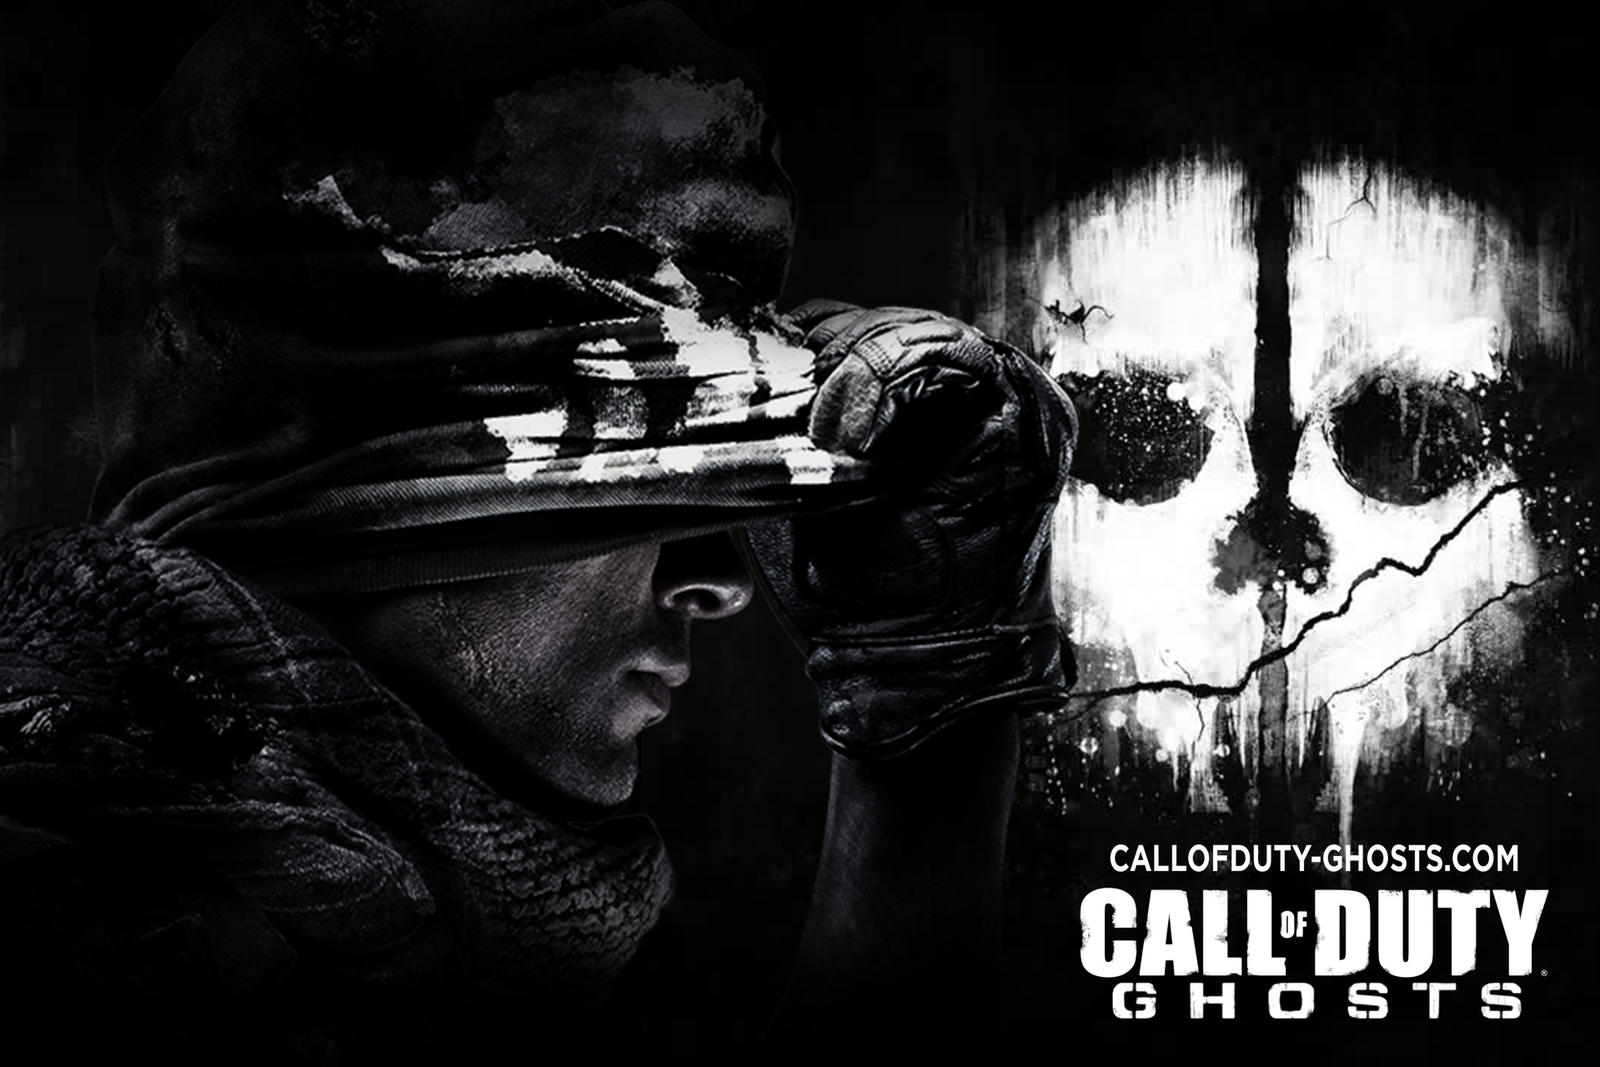 Call of Duty Ghosts Wallpaper #4 by codwallpapers